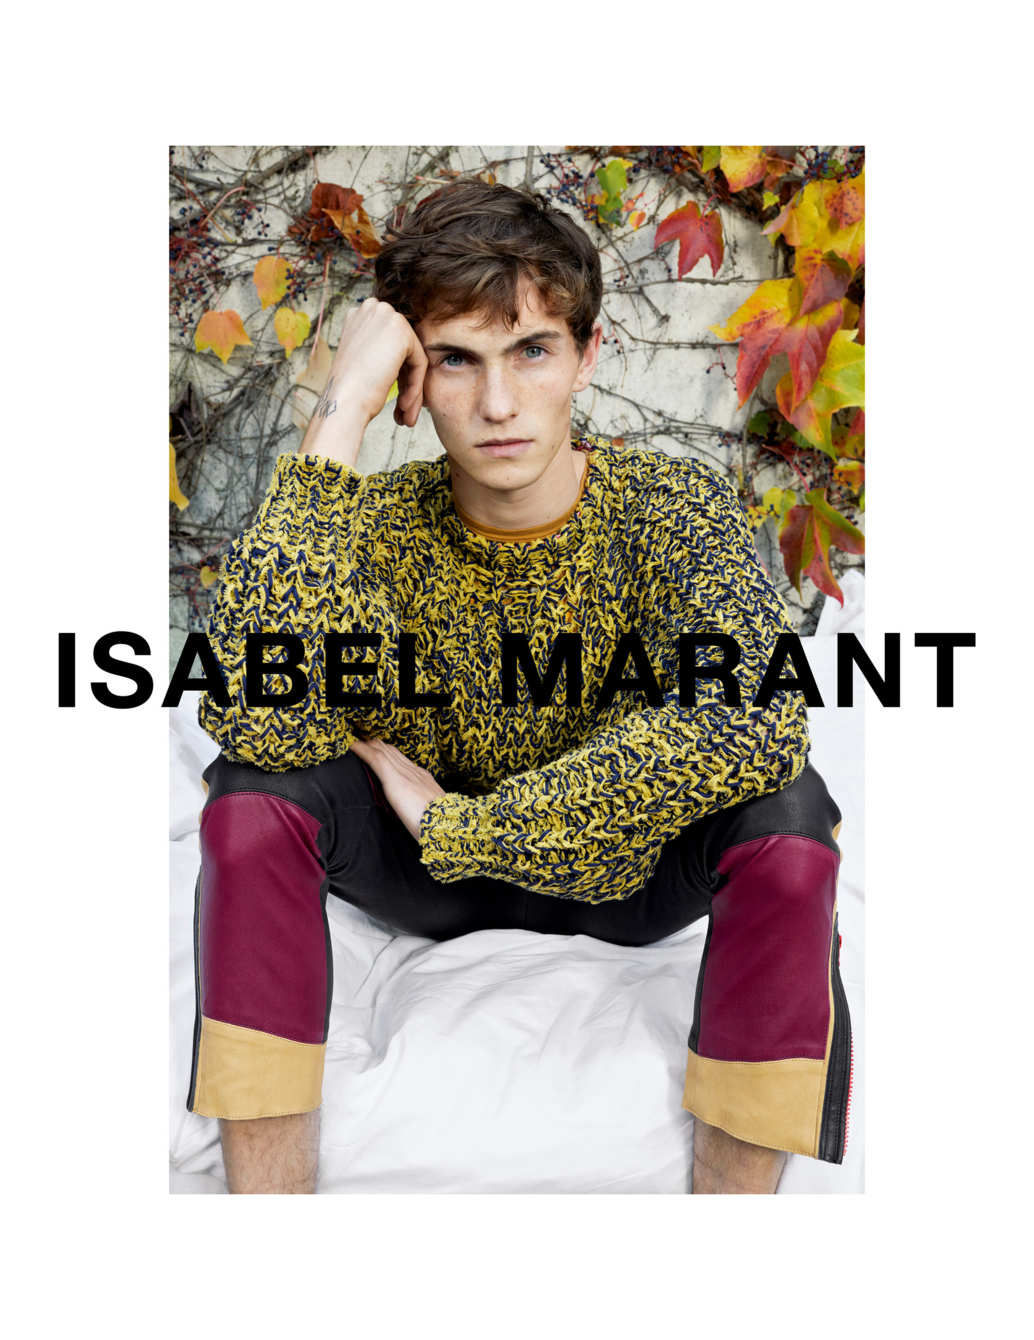 ISABEL_MARANT_PE18_SIMPLE_PAGE_HR_11.nocrop.w517.h670.2x